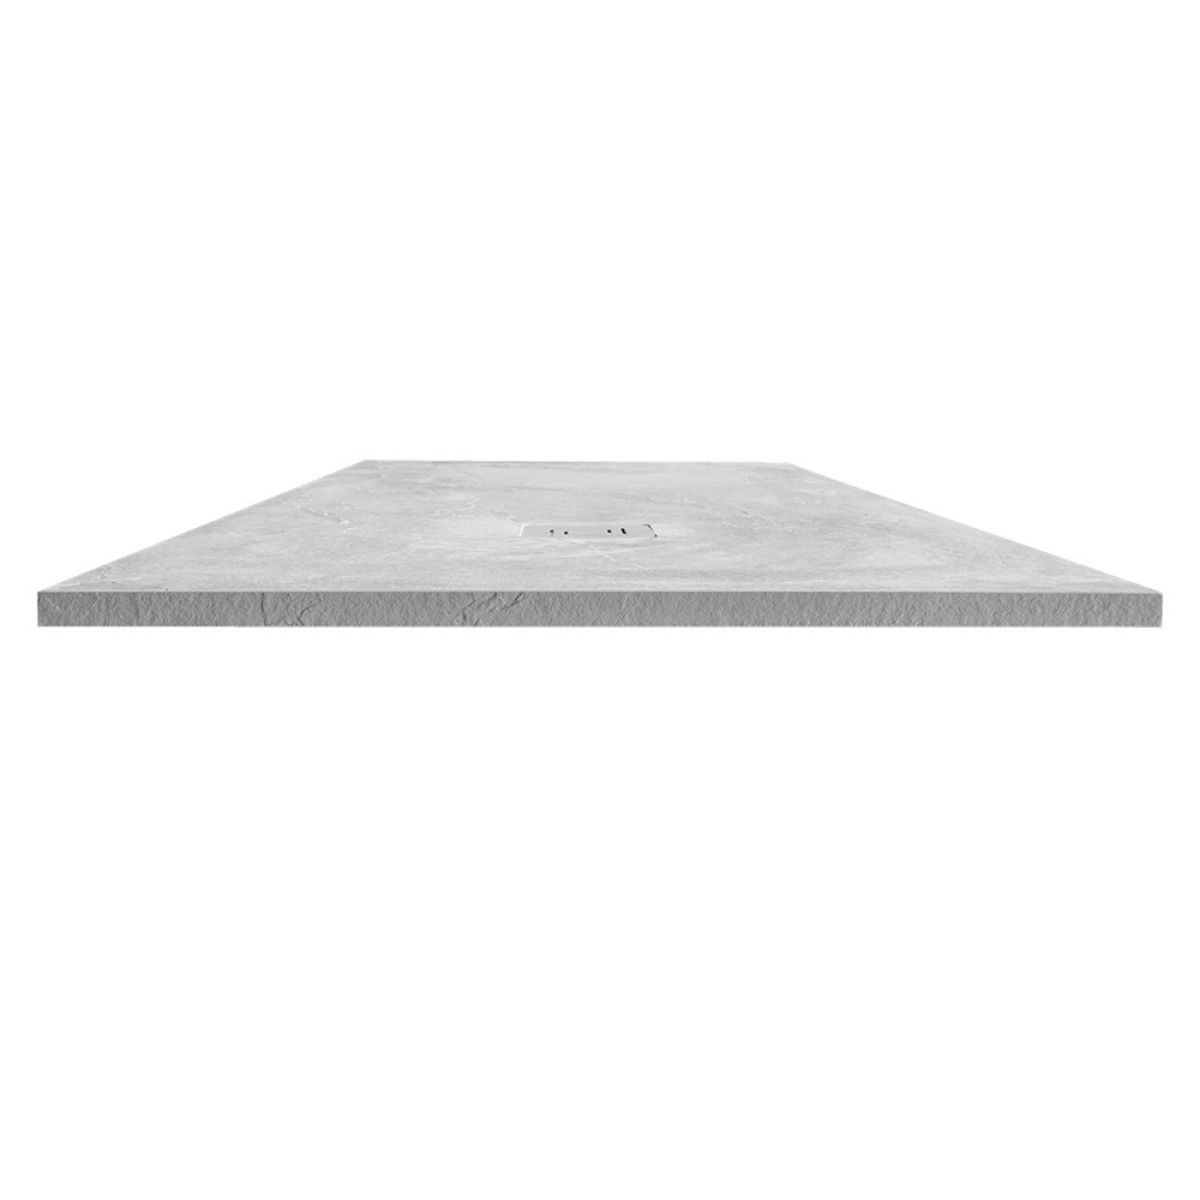 Merlyn Truestone Fossil Grey Rectangular Shower Tray 1600 x 900mm